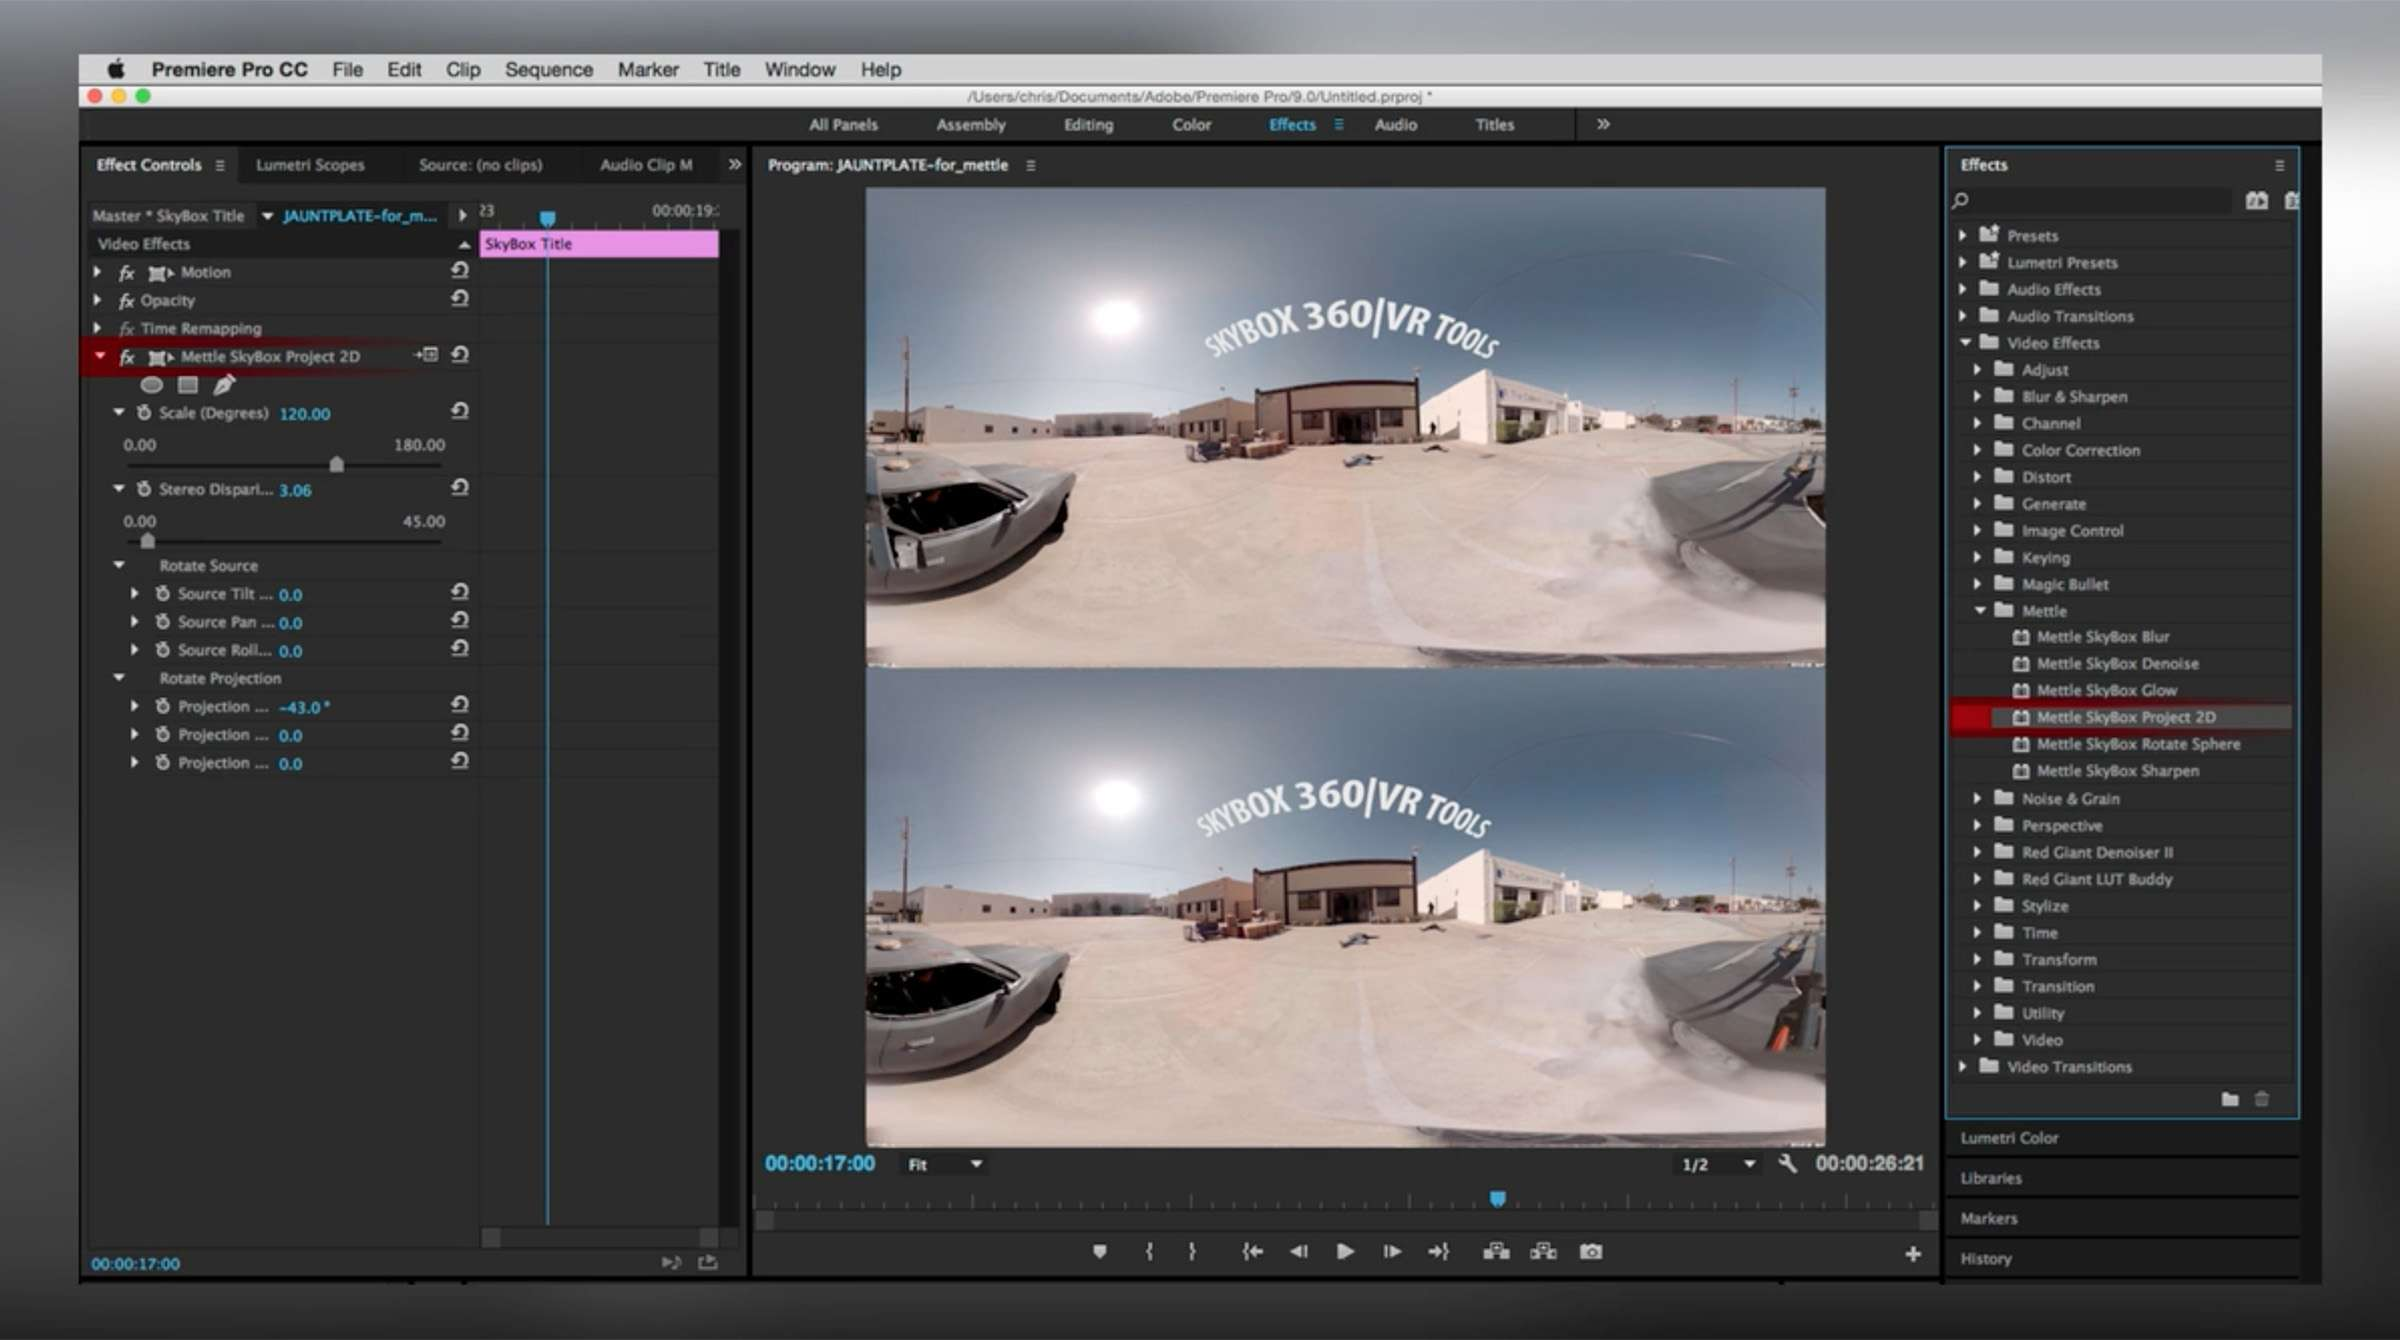 How to Work With Mettle Skybox 360/VR Tools in Premiere Pro